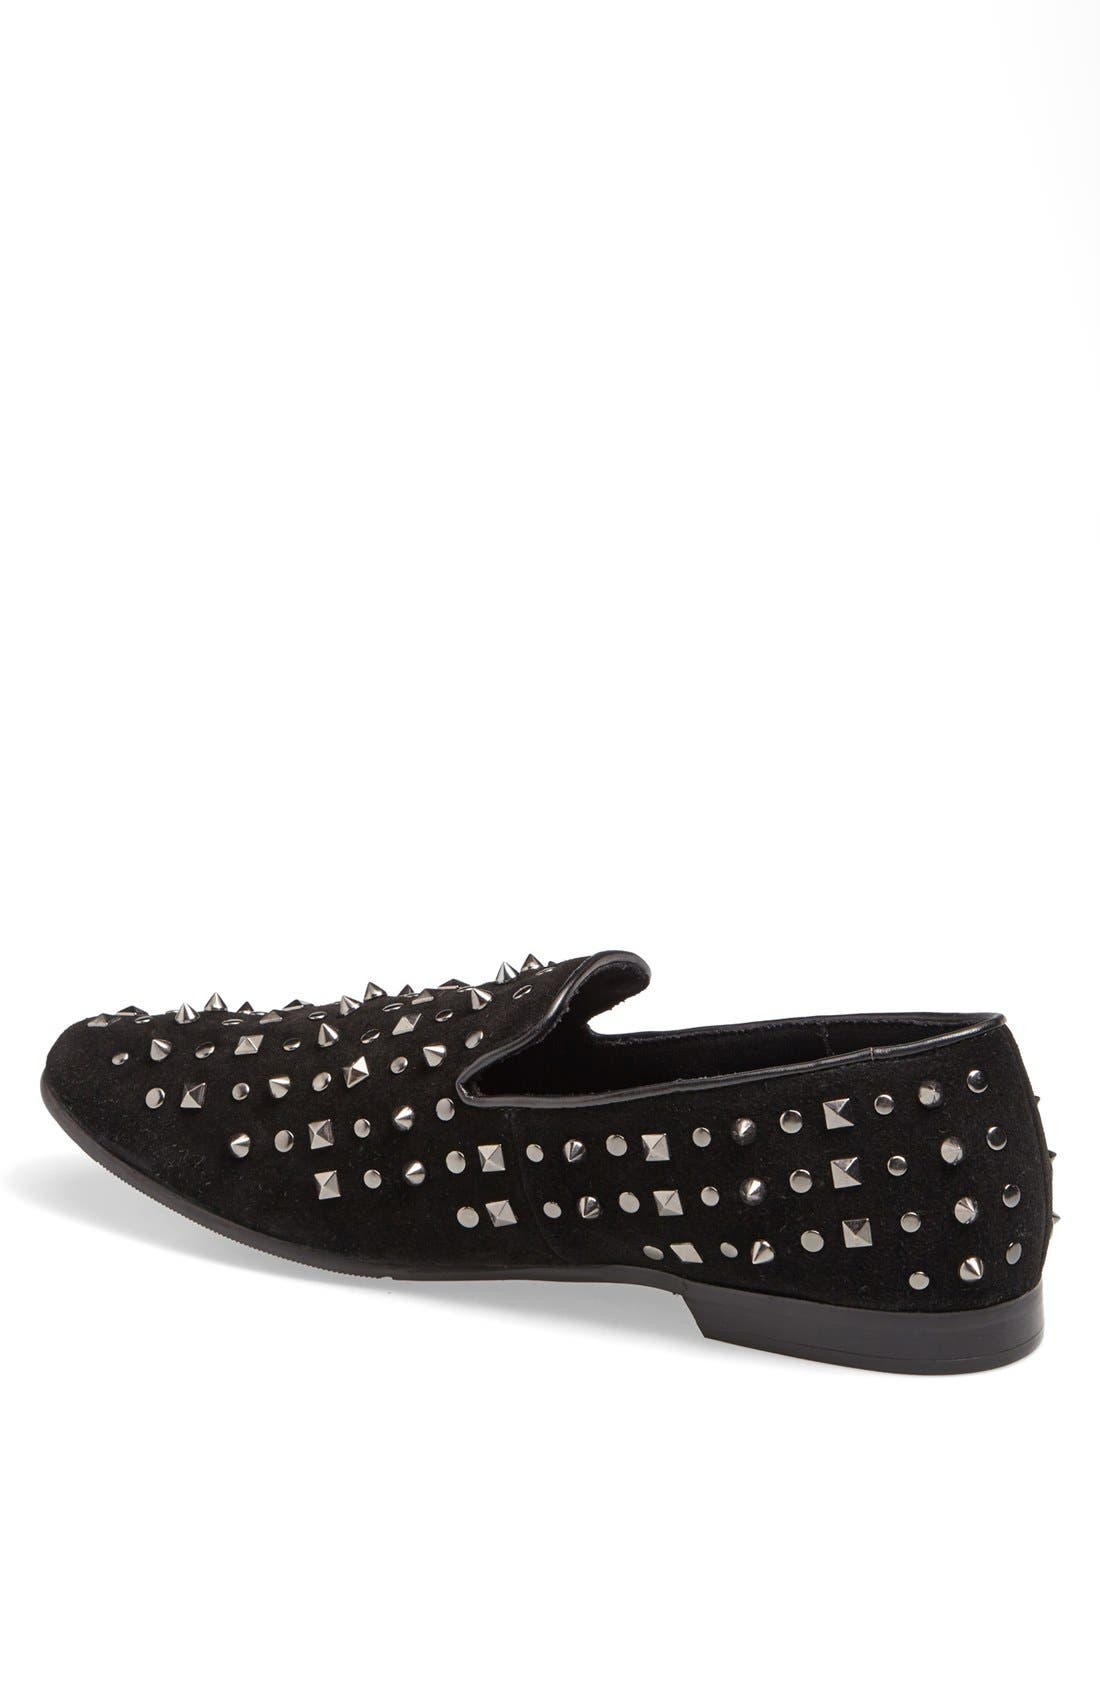 Alternate Image 2  - ALDO 'Coyan' Studded Loafer